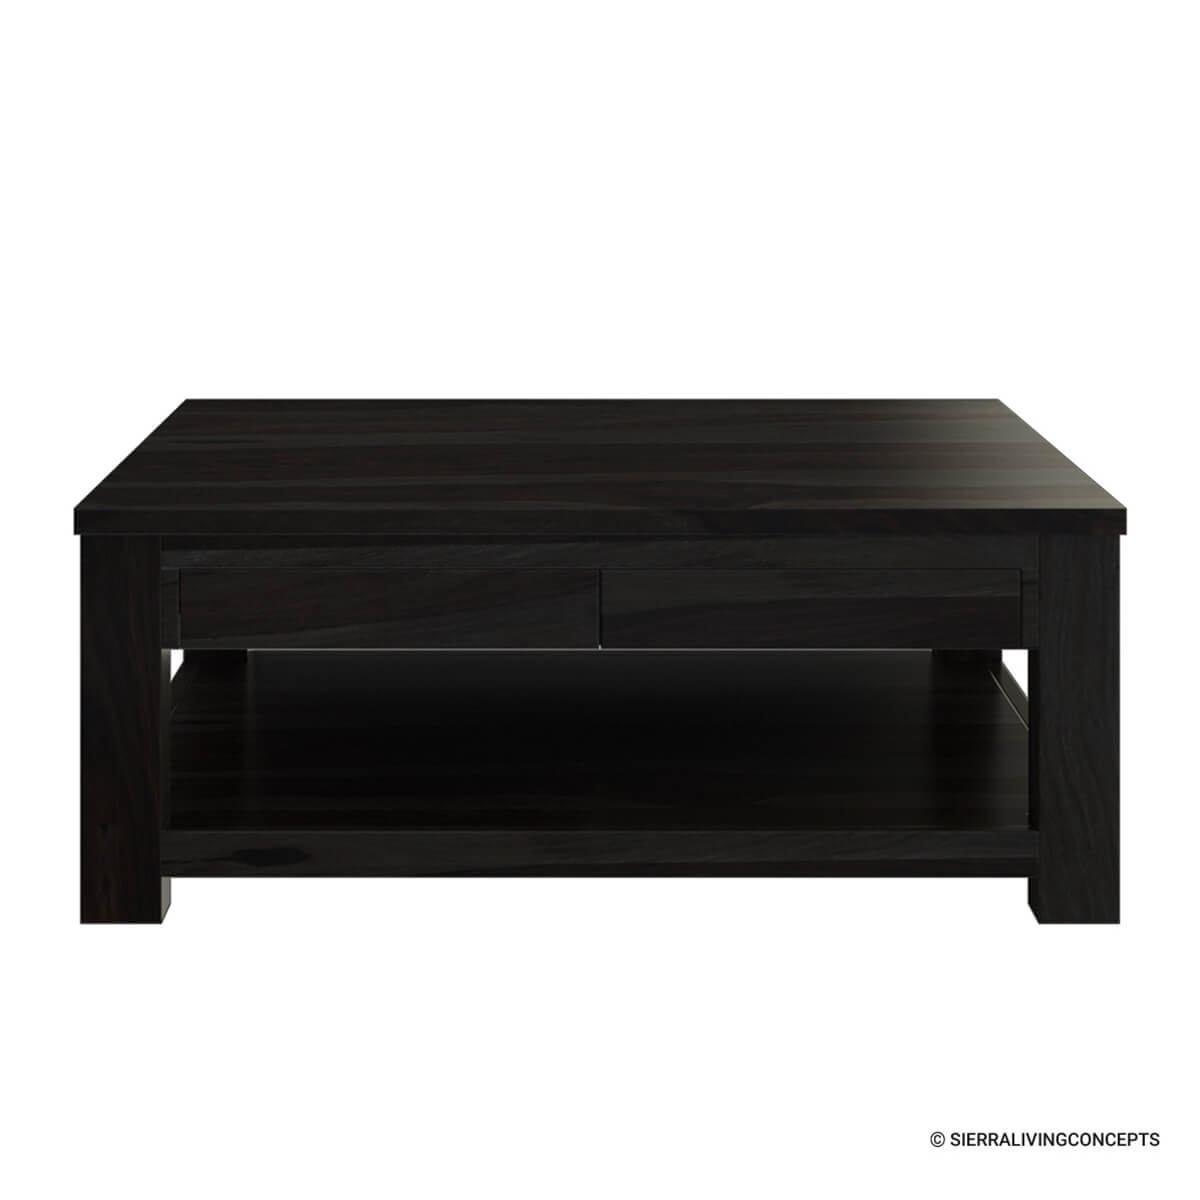 Sensational Glencoe Large Square Coffee Table Solid Wood Contemporary Style Gmtry Best Dining Table And Chair Ideas Images Gmtryco